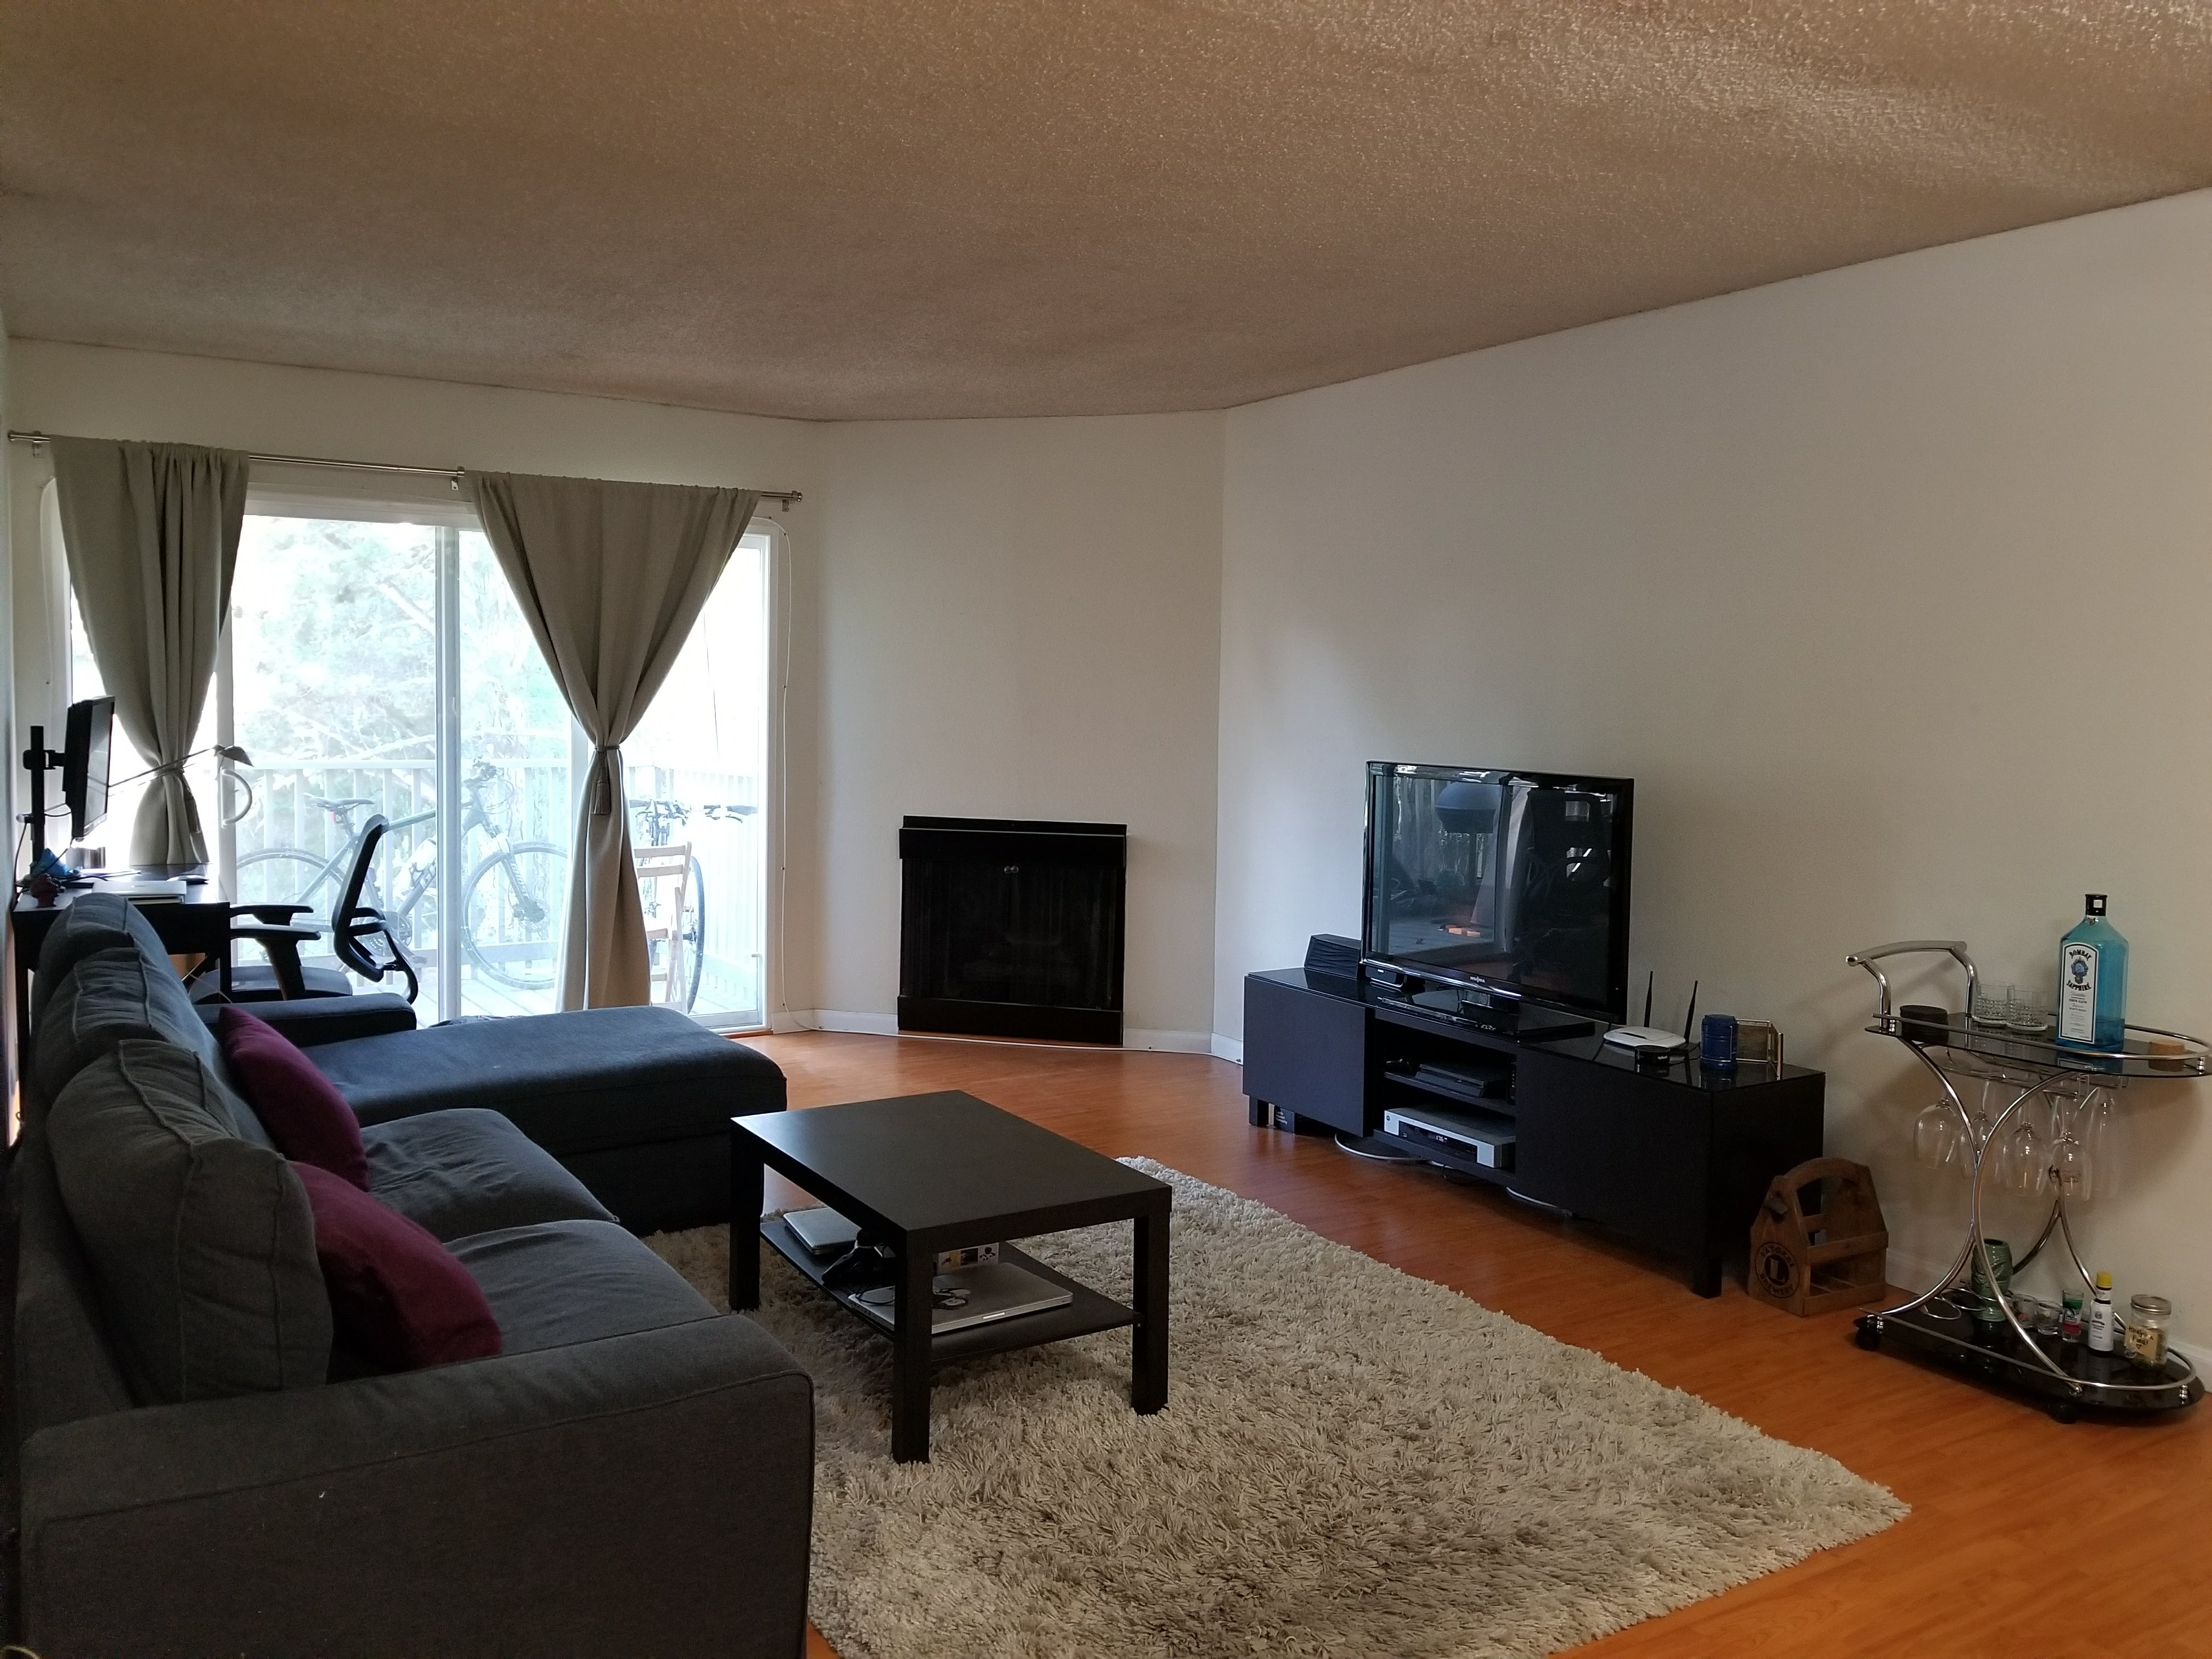 Apartment for Rent in Daly City